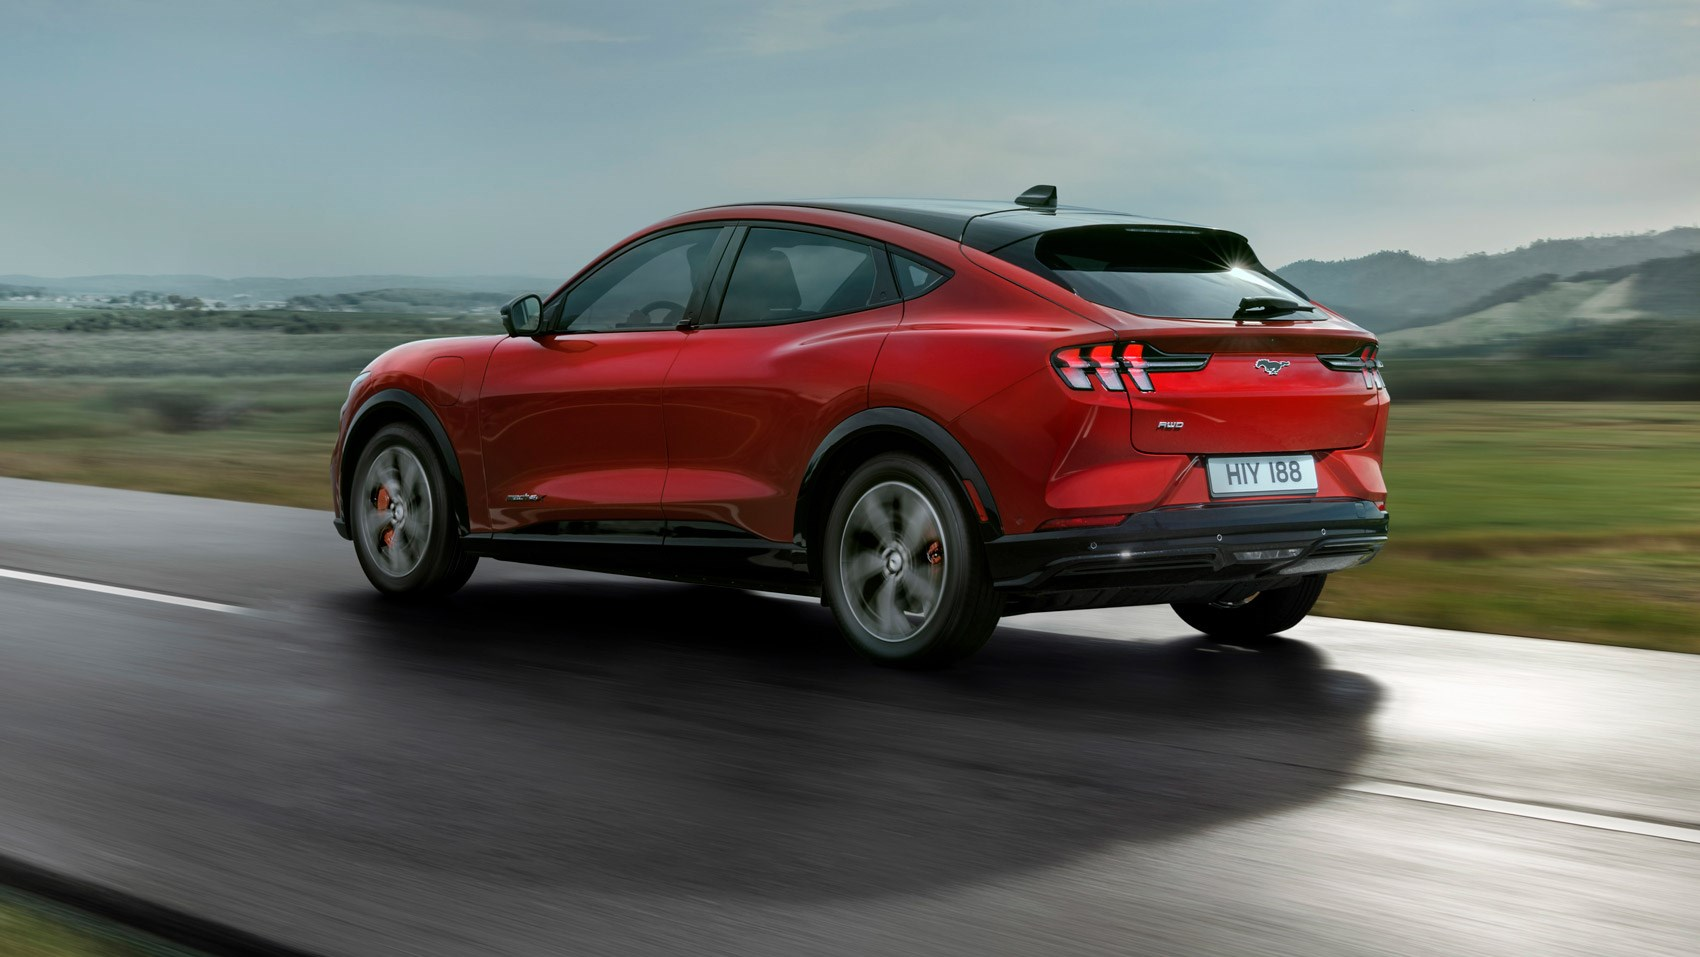 2020 Ford Mustang Mach E Cost